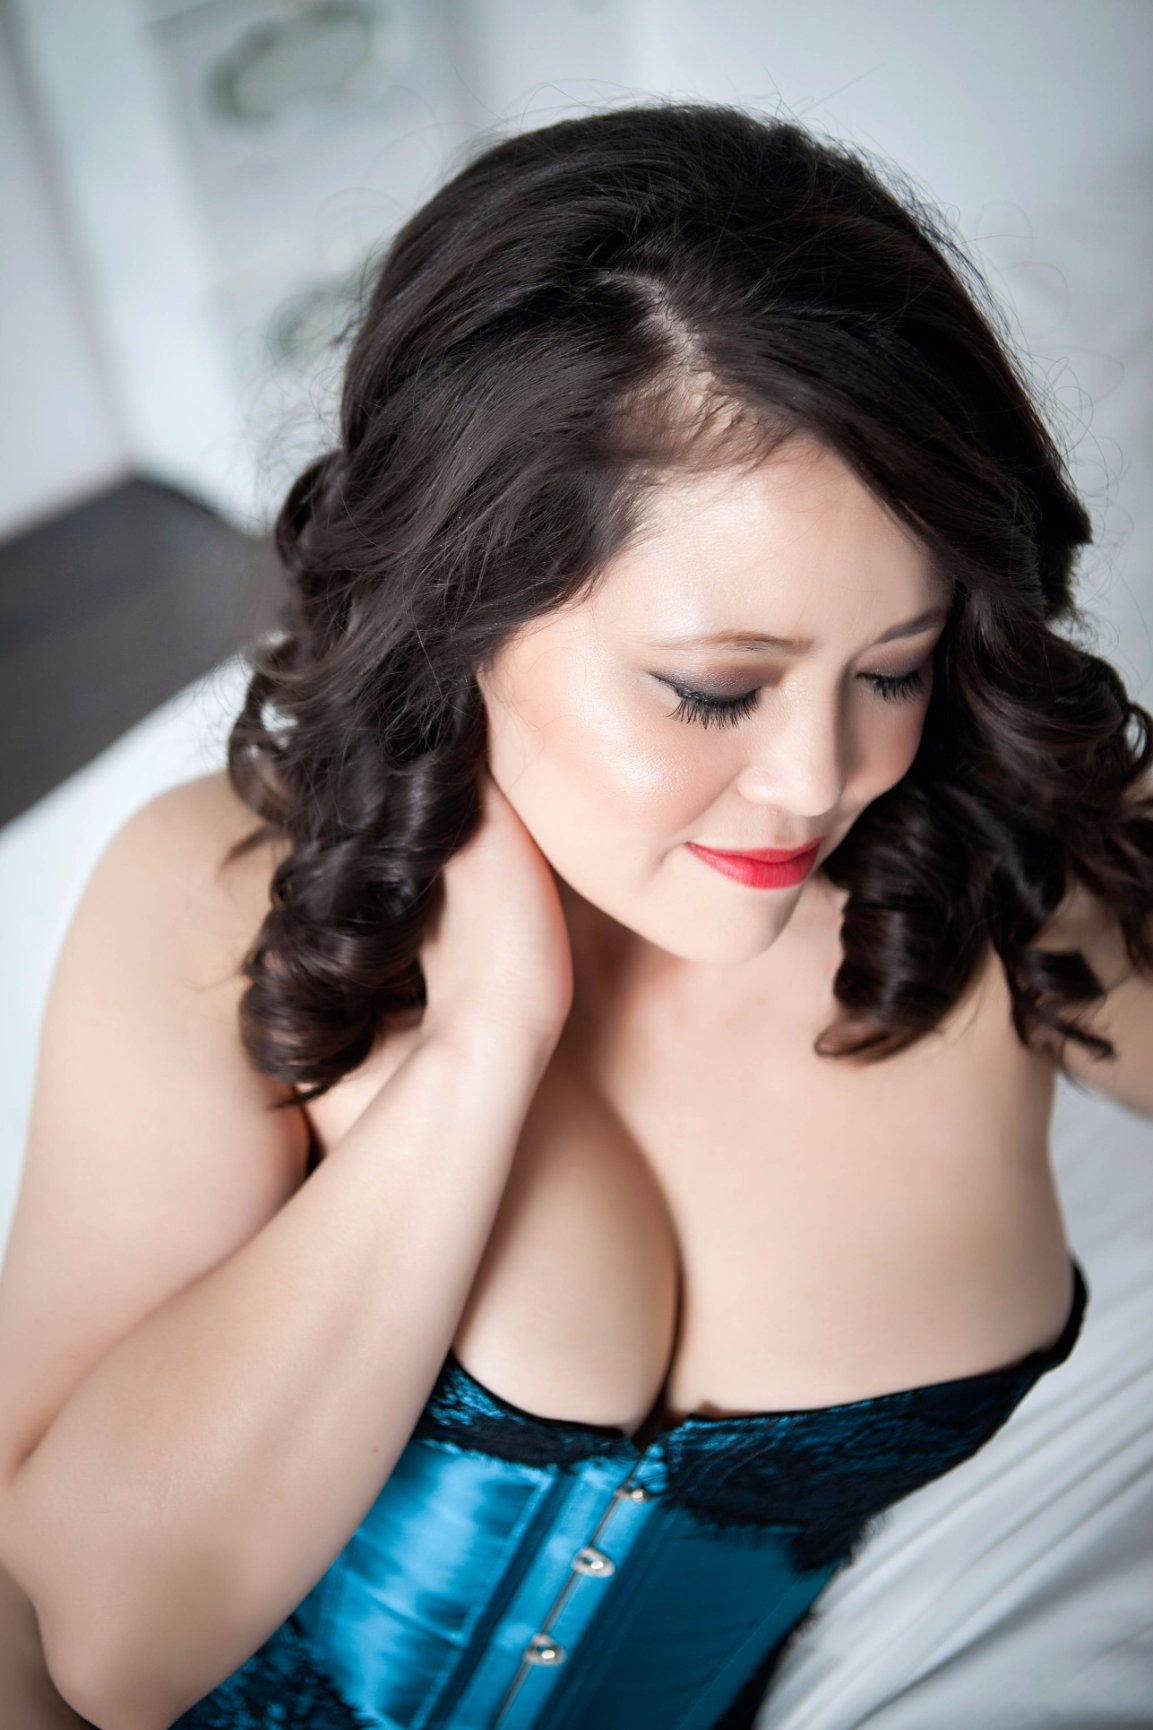 Boudoir Photography Services USA - All Things Boudoir